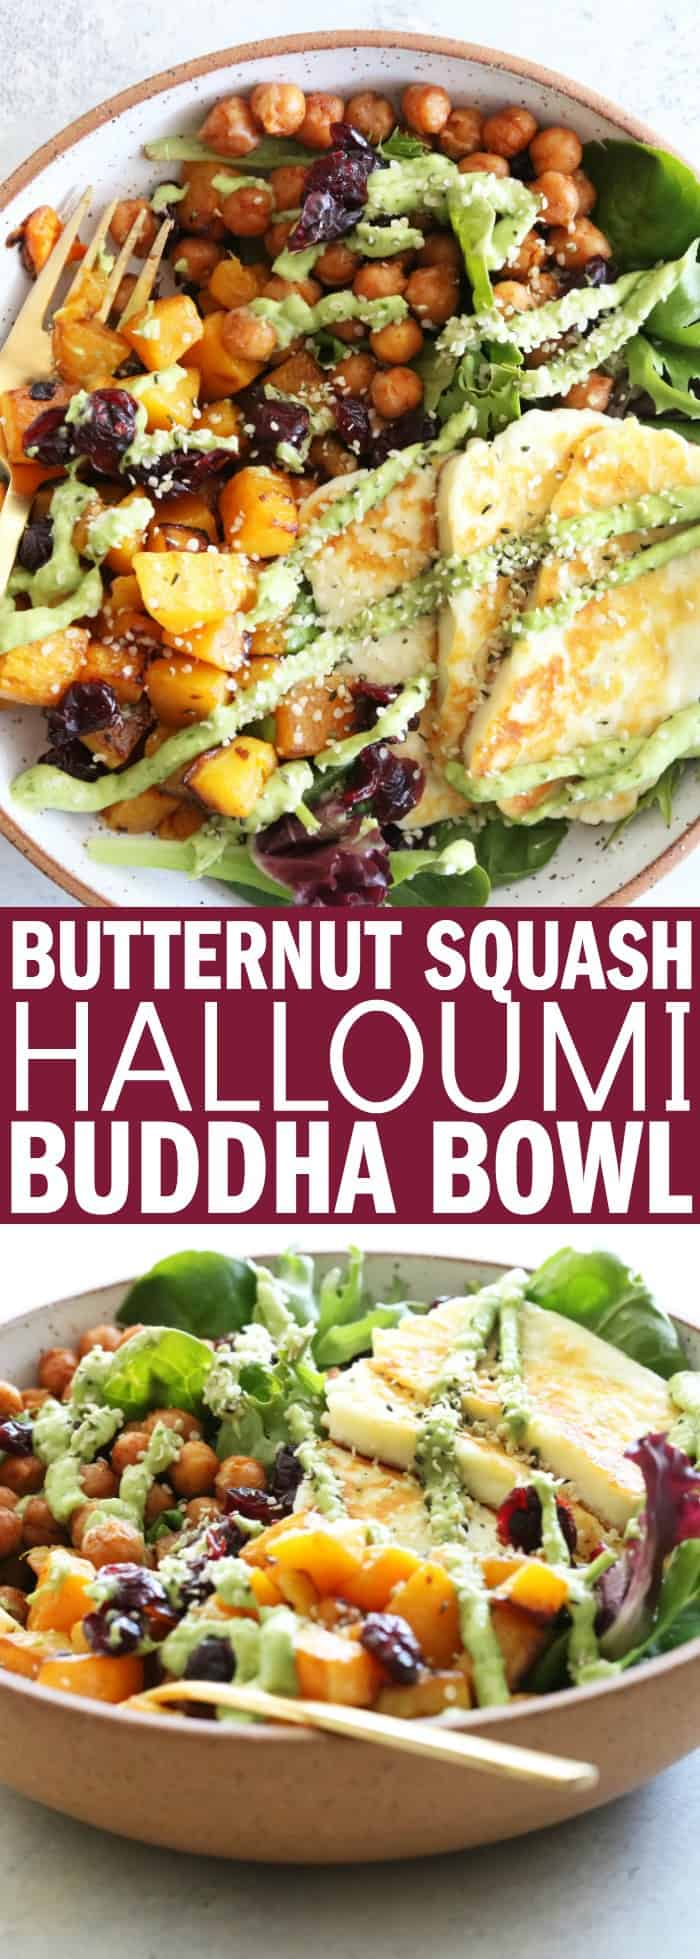 This Butternut Squash Halloumi Buddha Bowl is perfect for your #meatlessmonday dinner!! It's full of delicious, hearty vegetables and flavor! thetoastedpinenut.com #buddhabowl #vegetarian #meatlessmonday #glutenfree #salad #thetoastedpinenut